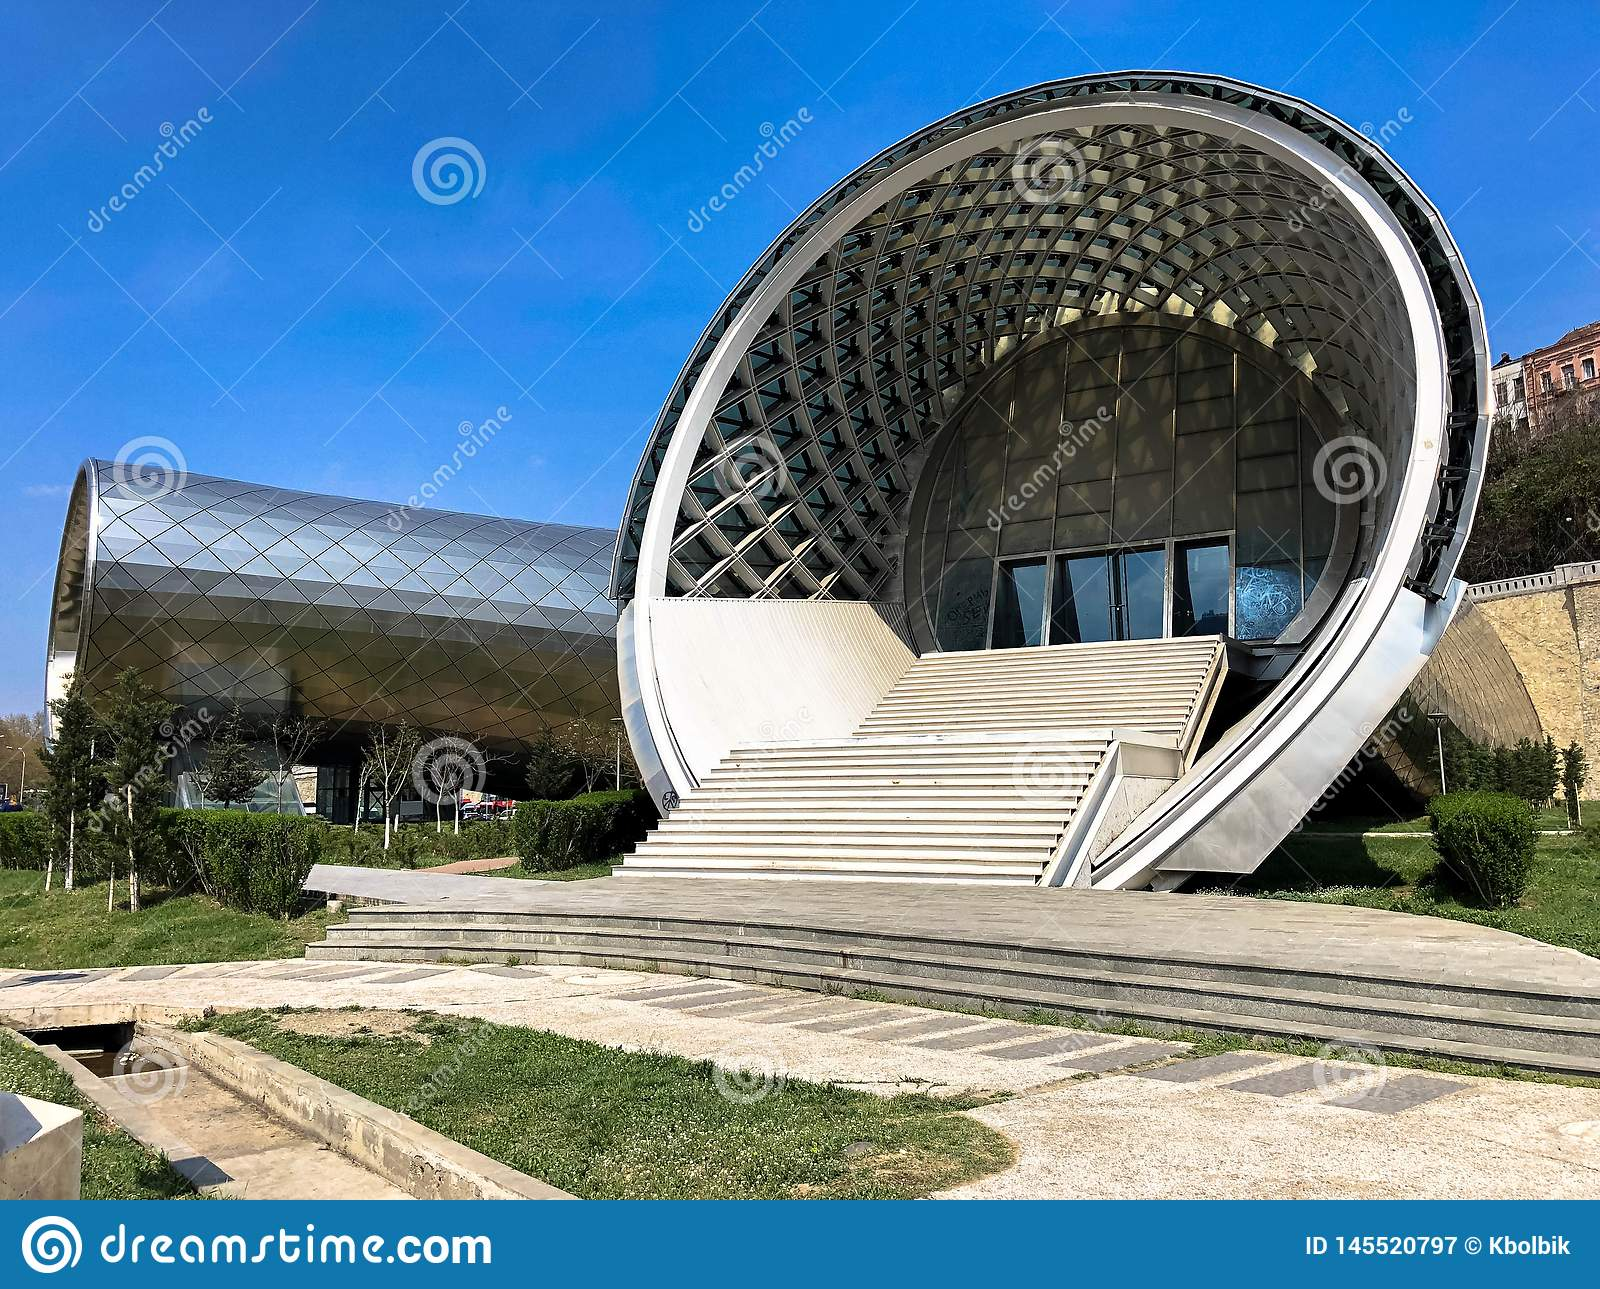 Dreamstime.com & Beautiful Round Unusual Modern Futuristic Abstract White Porch With ...